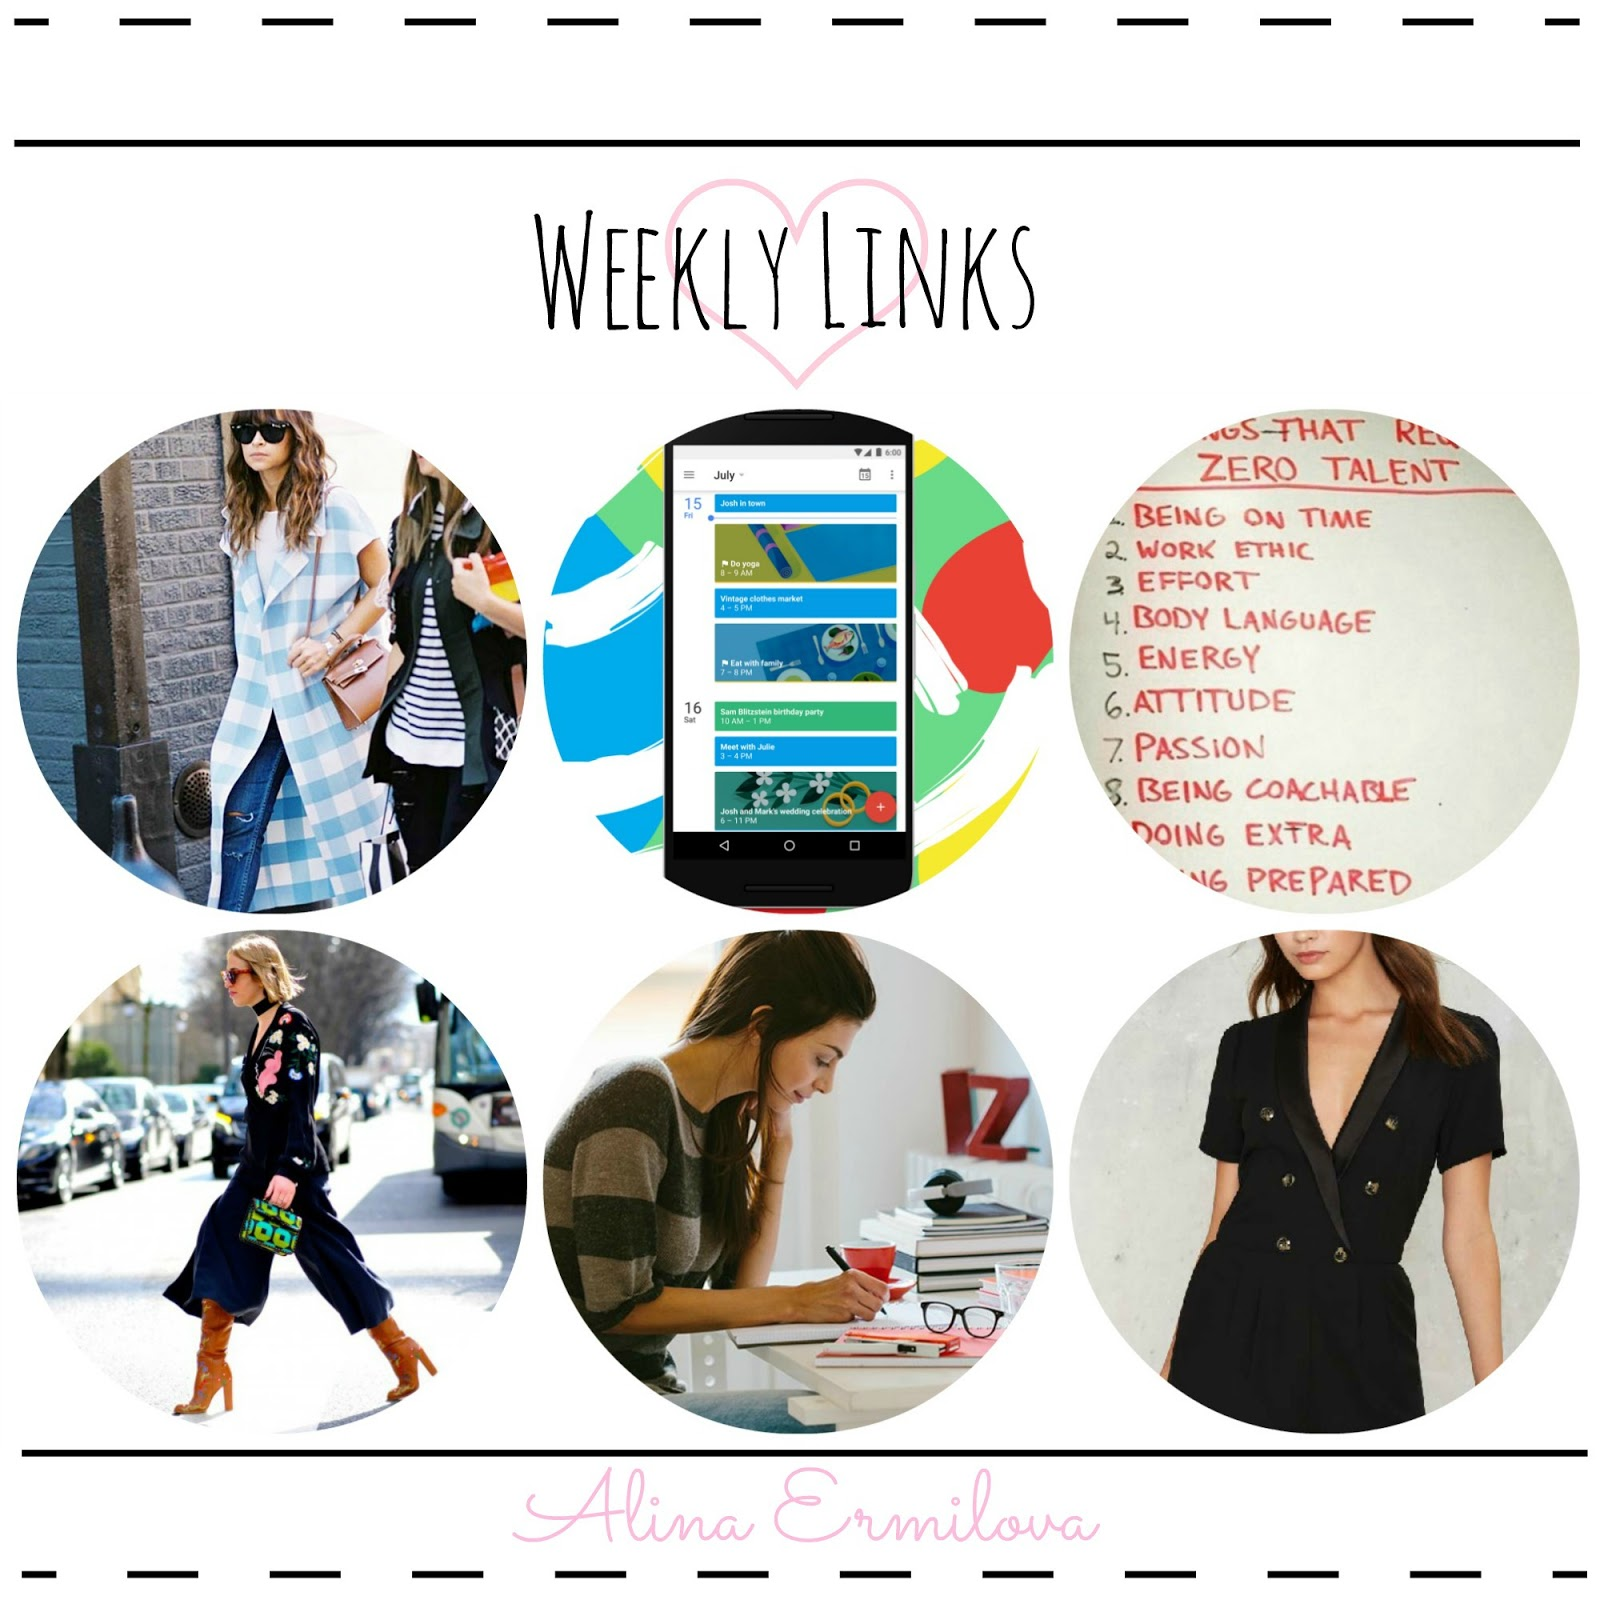 6 Calendar hacks for productivity, Outfit combinations that work every time, Things you only know if you're a fashion blogger, etc.